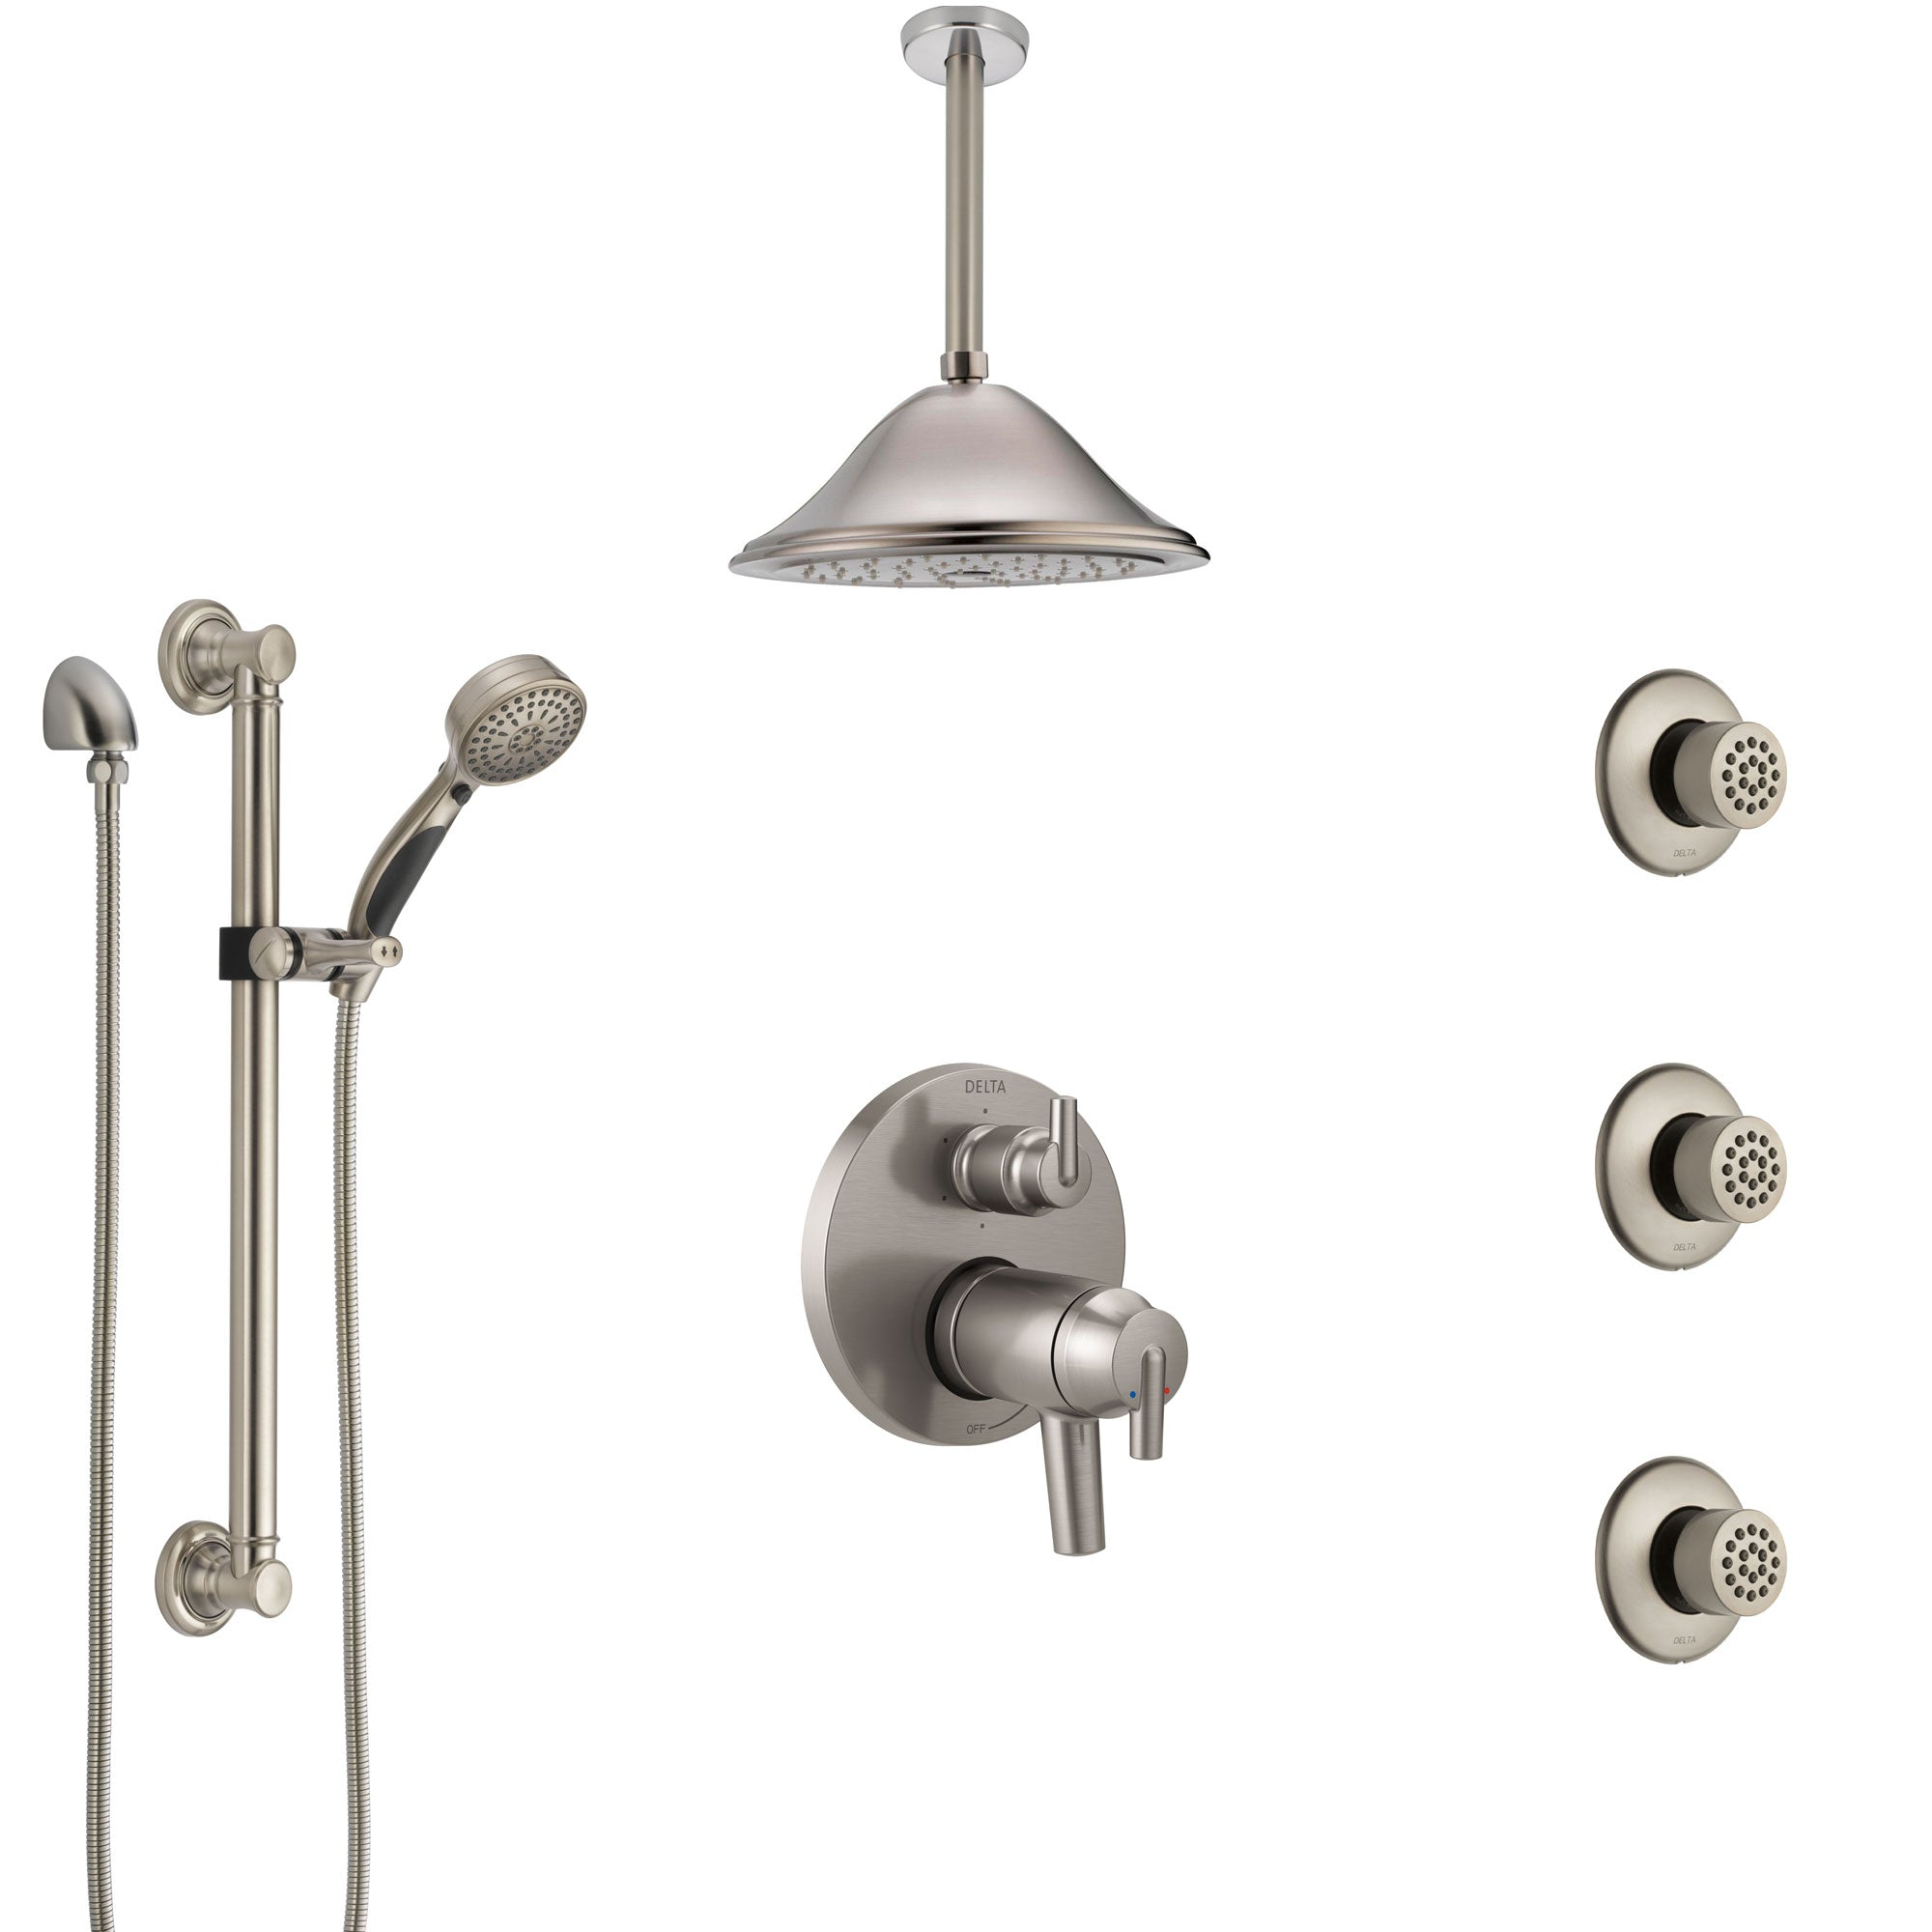 Delta Trinsic Dual Thermostatic Control Stainless Steel Finish Shower System, Ceiling Showerhead, 3 Body Jets, Grab Bar Hand Spray SS27T959SS5